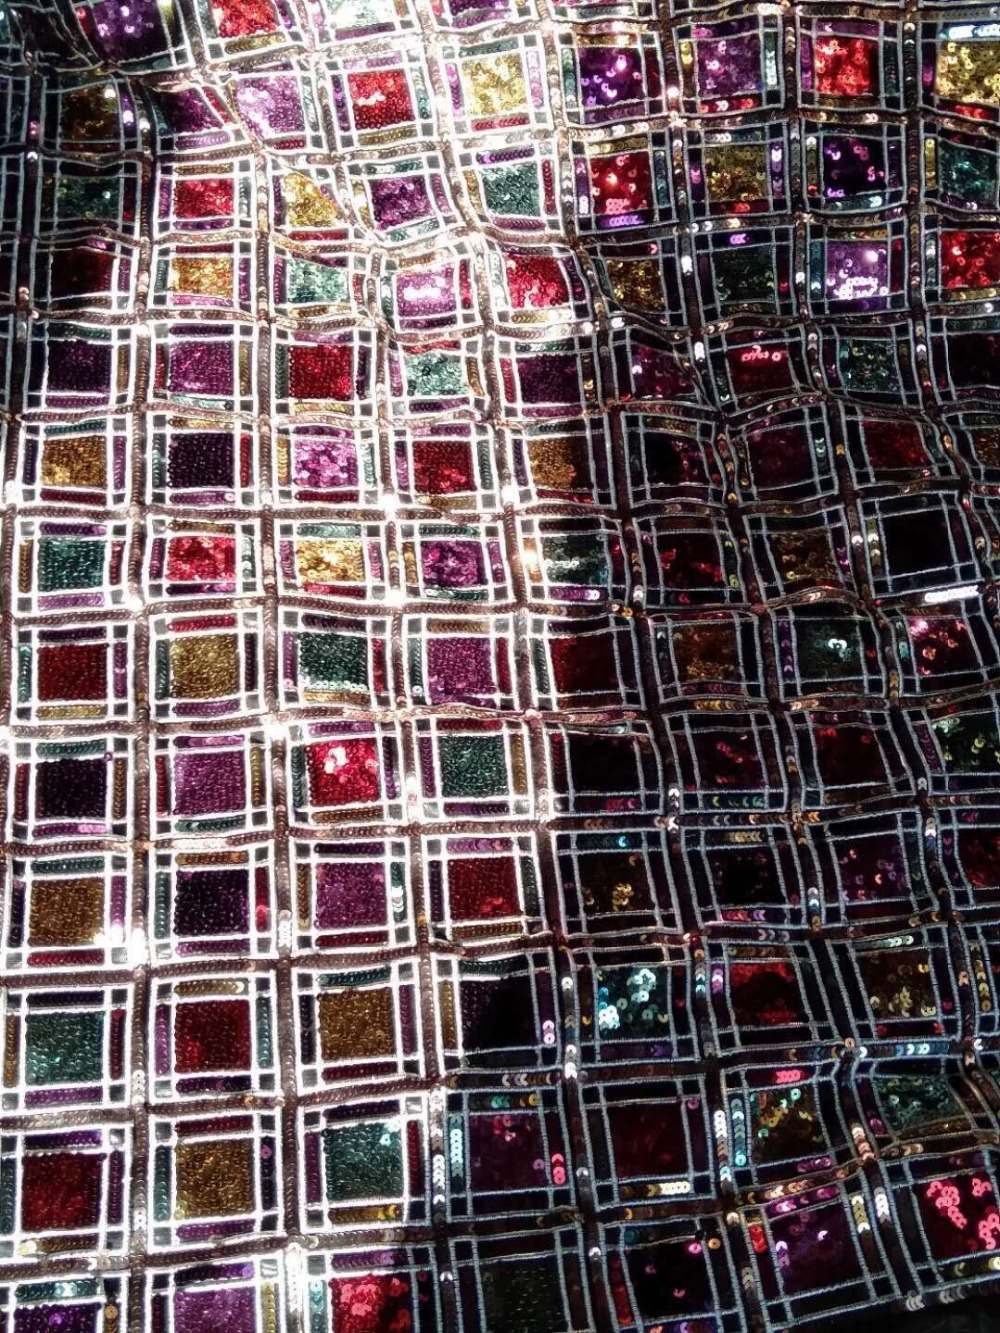 CiCi 3 402 Hot selling african sequins lace fabric tessel fringel embroidered tulle mesh lace fabric